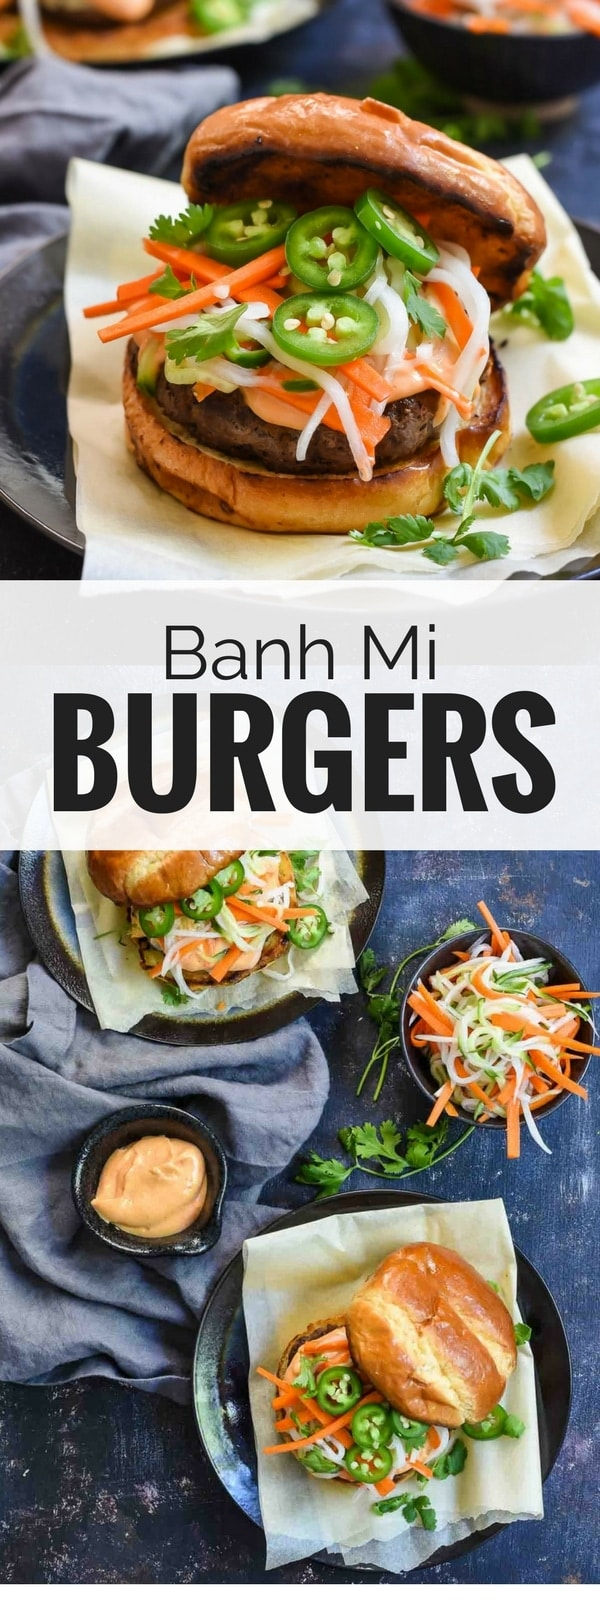 Banh Mi Burgers topped with quick pickled vegetables and spicy Sriracha mayo are loaded with flavor and perfect for summer cookouts!